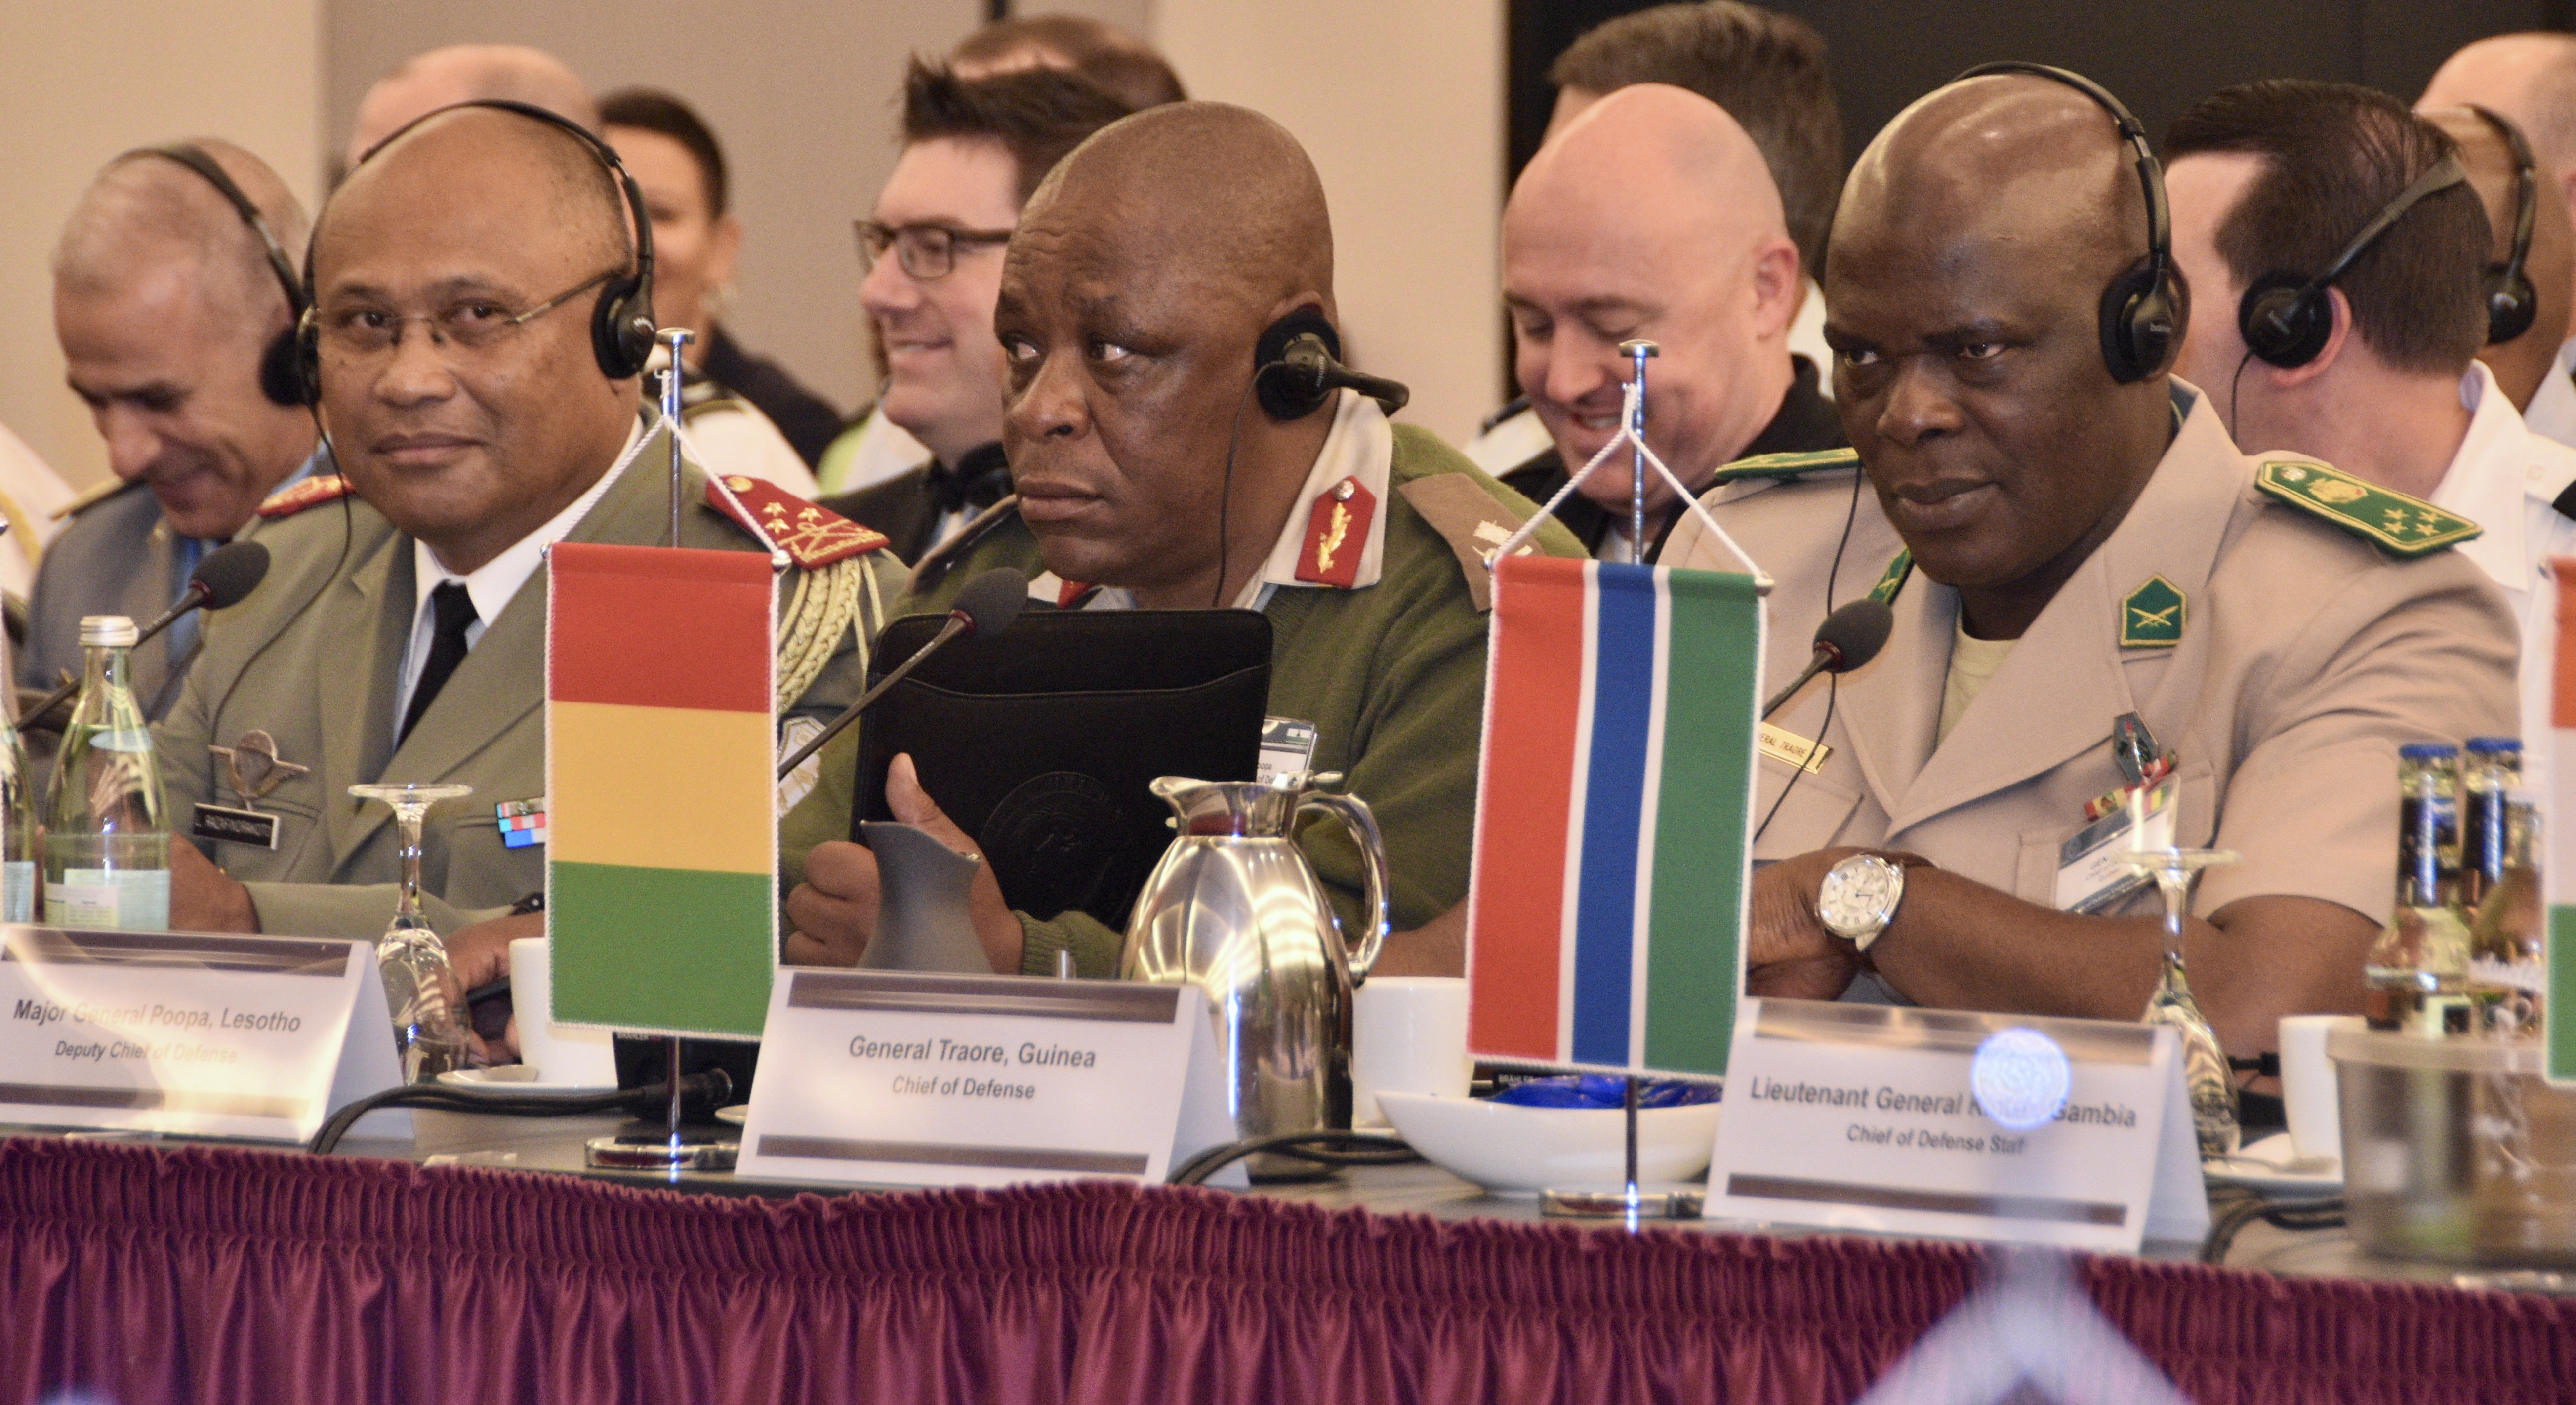 More than 40 African Chiefs of Defense or their representatives participated in the first ever CHoD conference hosted by U.S. Africa Command, April 19-20, 2017, in Stuttgart, GE. Countering VEOs and peace support operations were the central topics for discussion. (Photos by Brenda Law and Staff Sgt. Grady Jones, U.S. AFRICOM Public Affairs/Released)